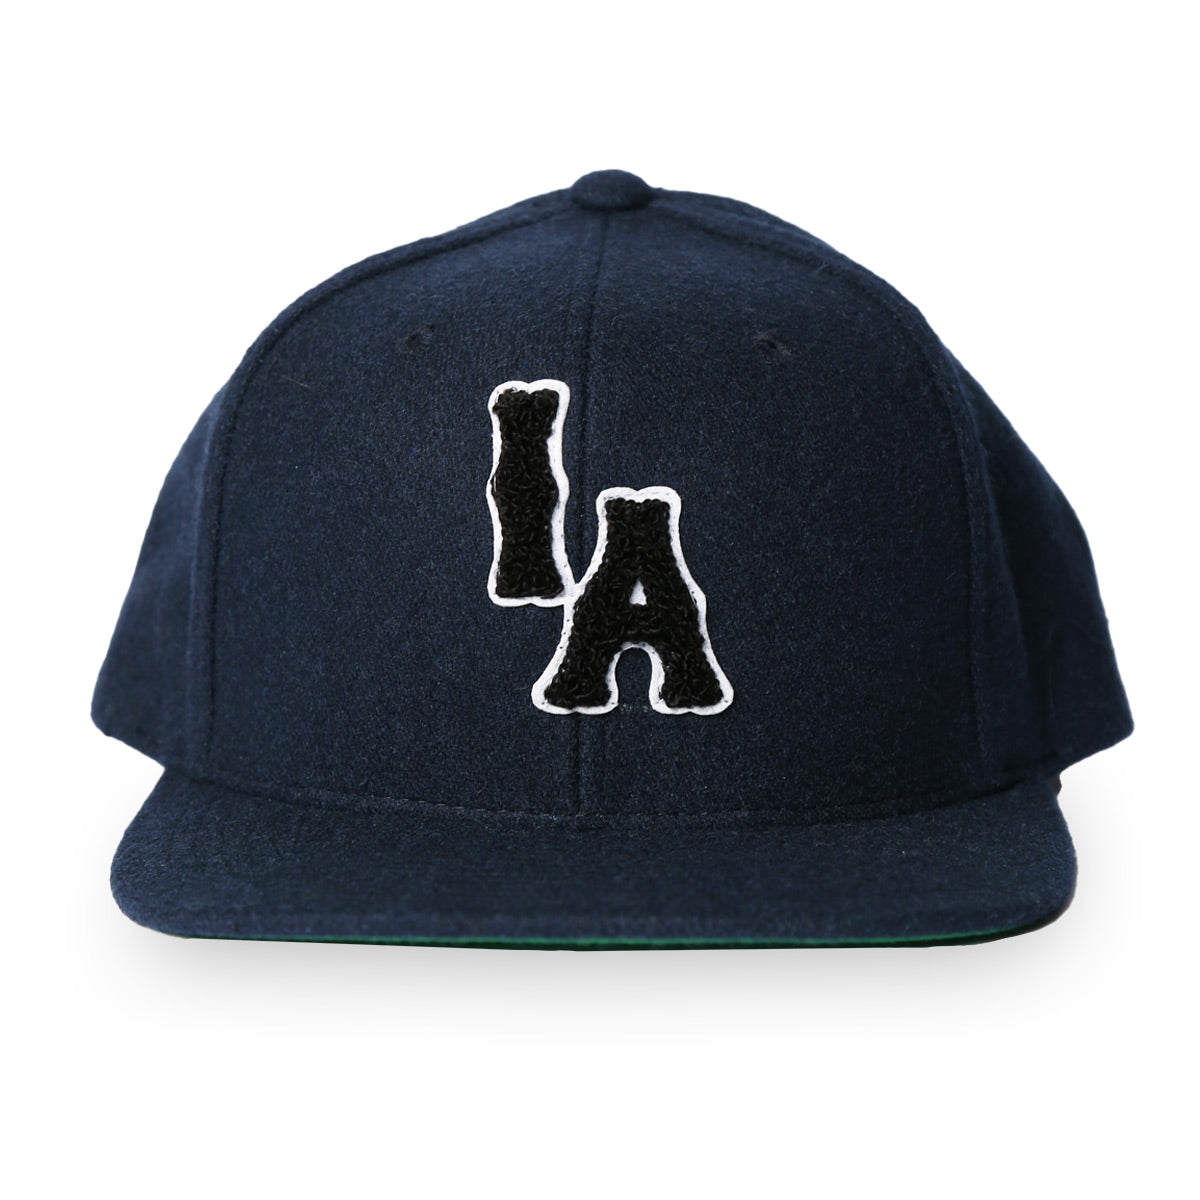 Iowa Vintage Navy Snapback Hat